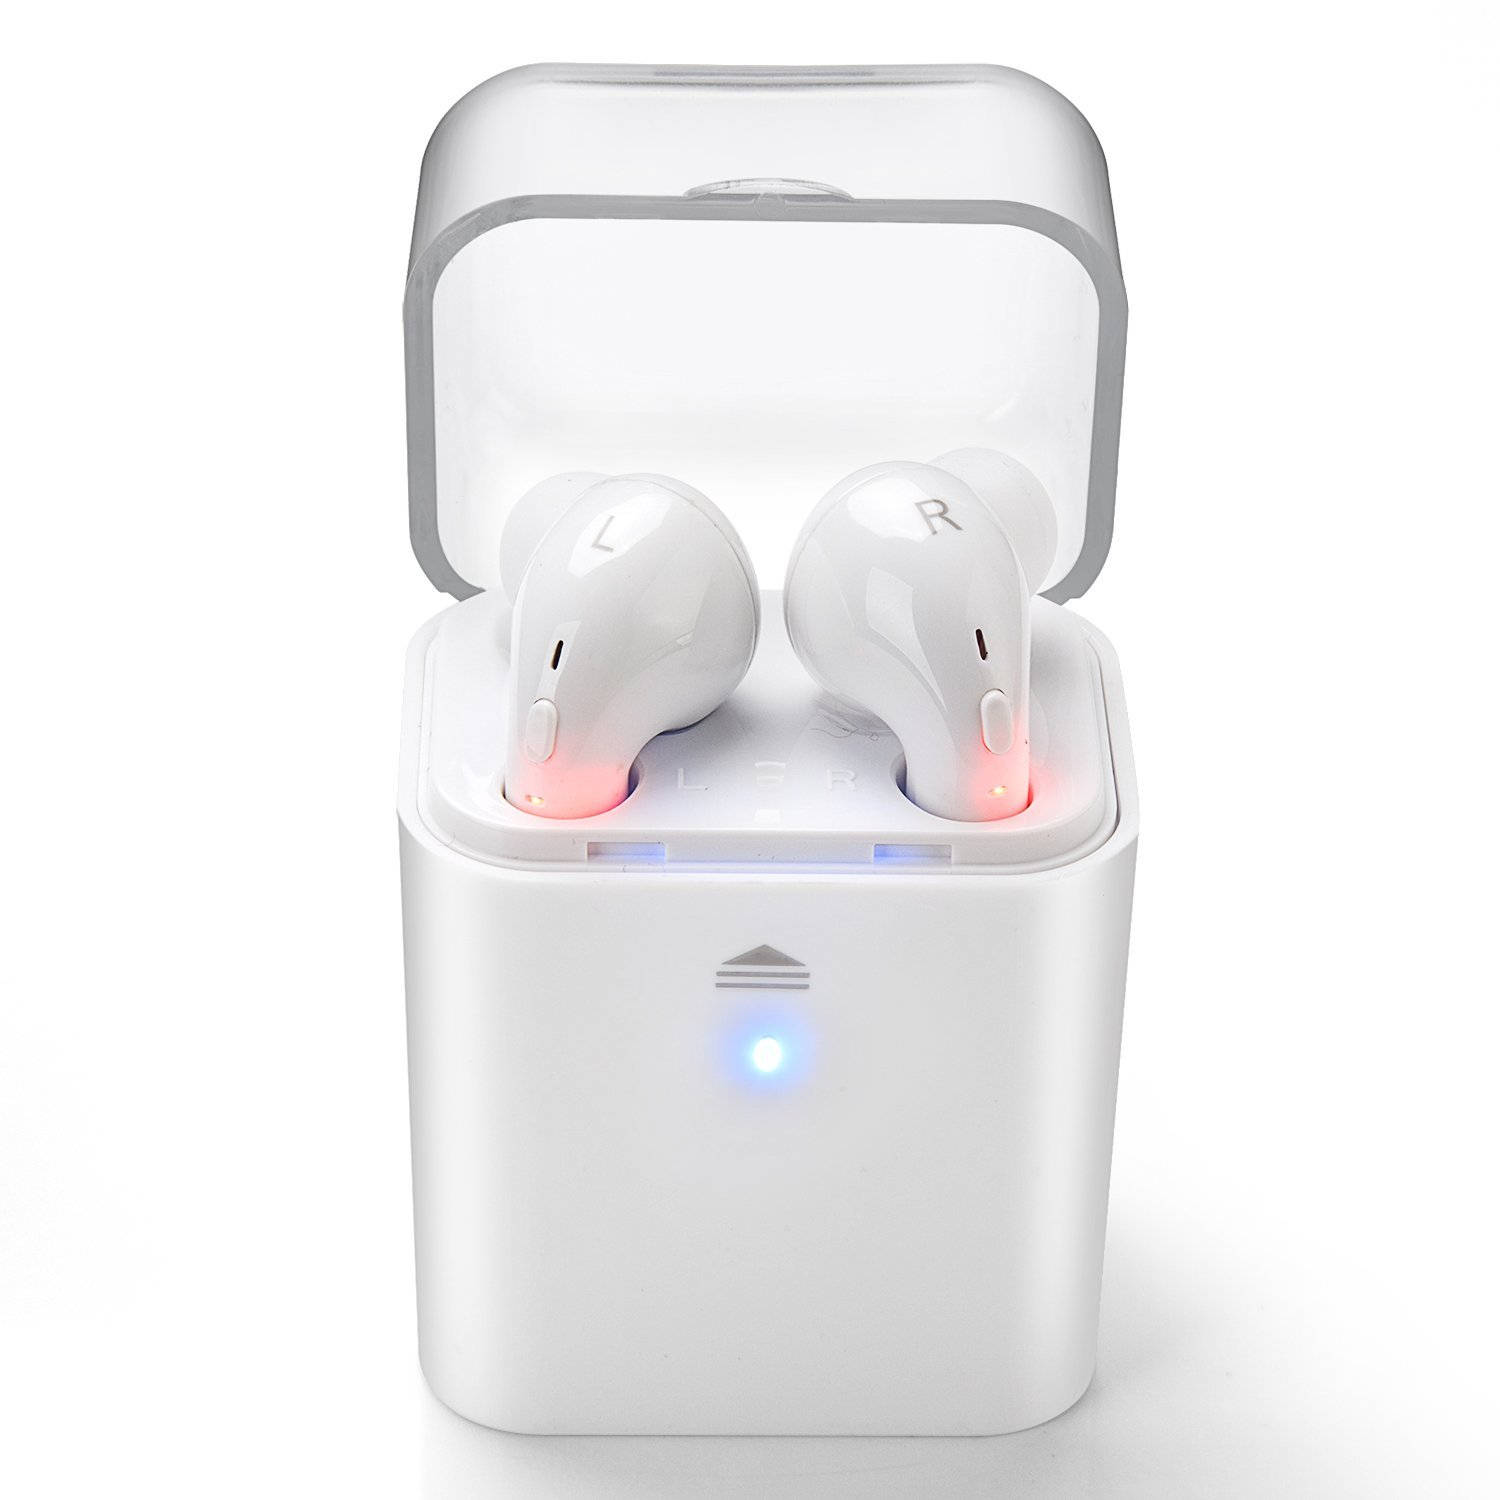 Earphone bluetooth for iphone - iphone 7 earphones charger